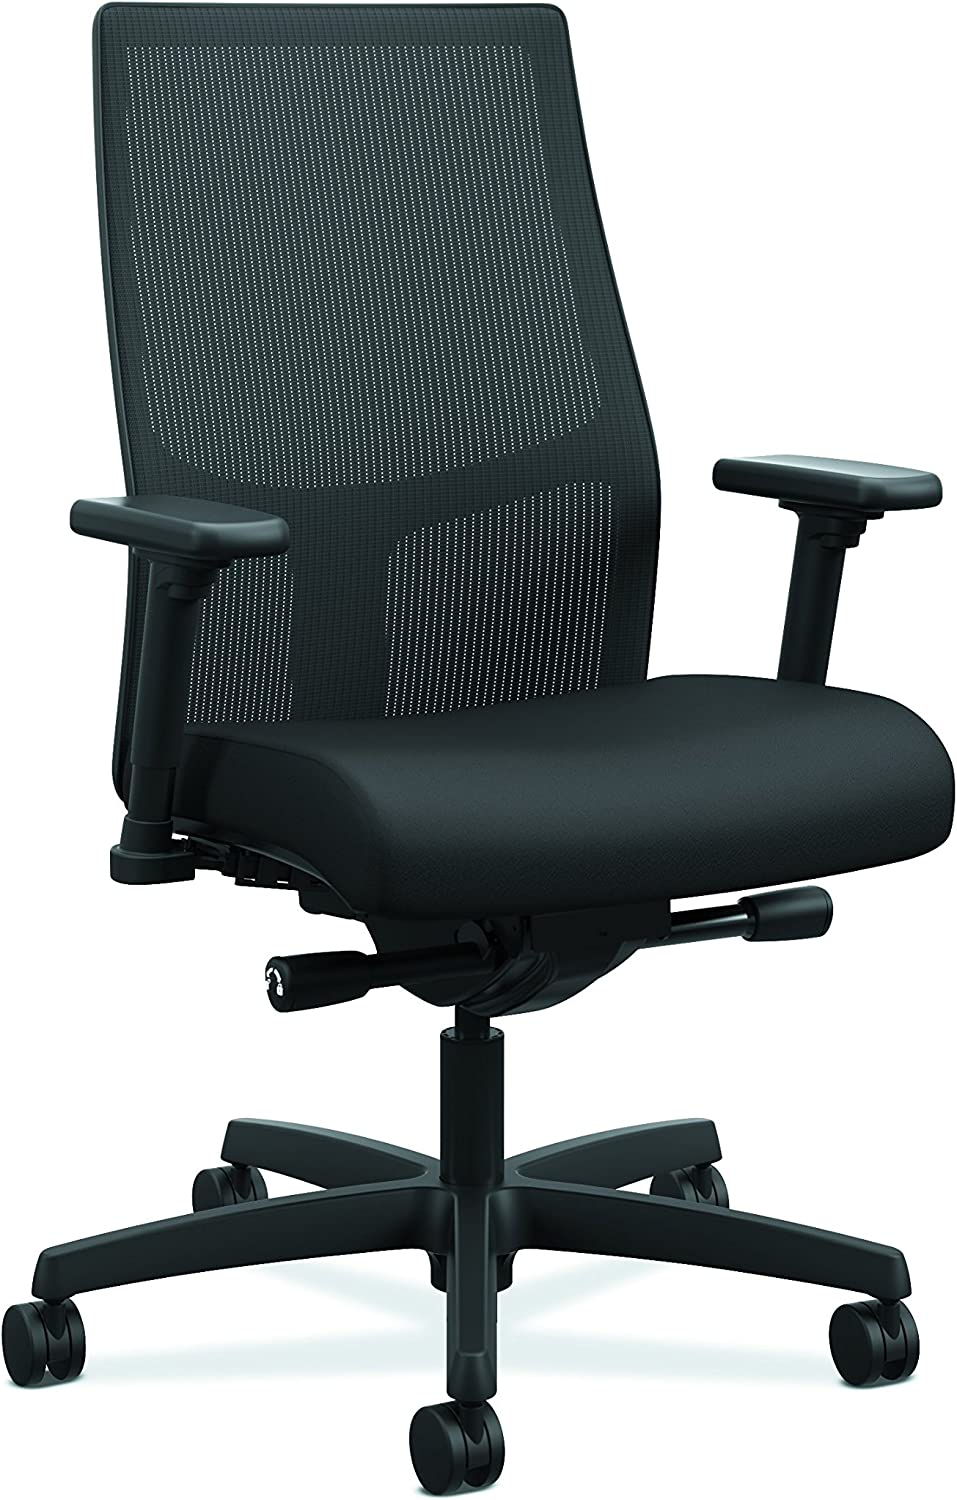 HON Ignition 2.0 Mid-Back - Black Mesh Computer Chair for Office Desk, Black Fabric